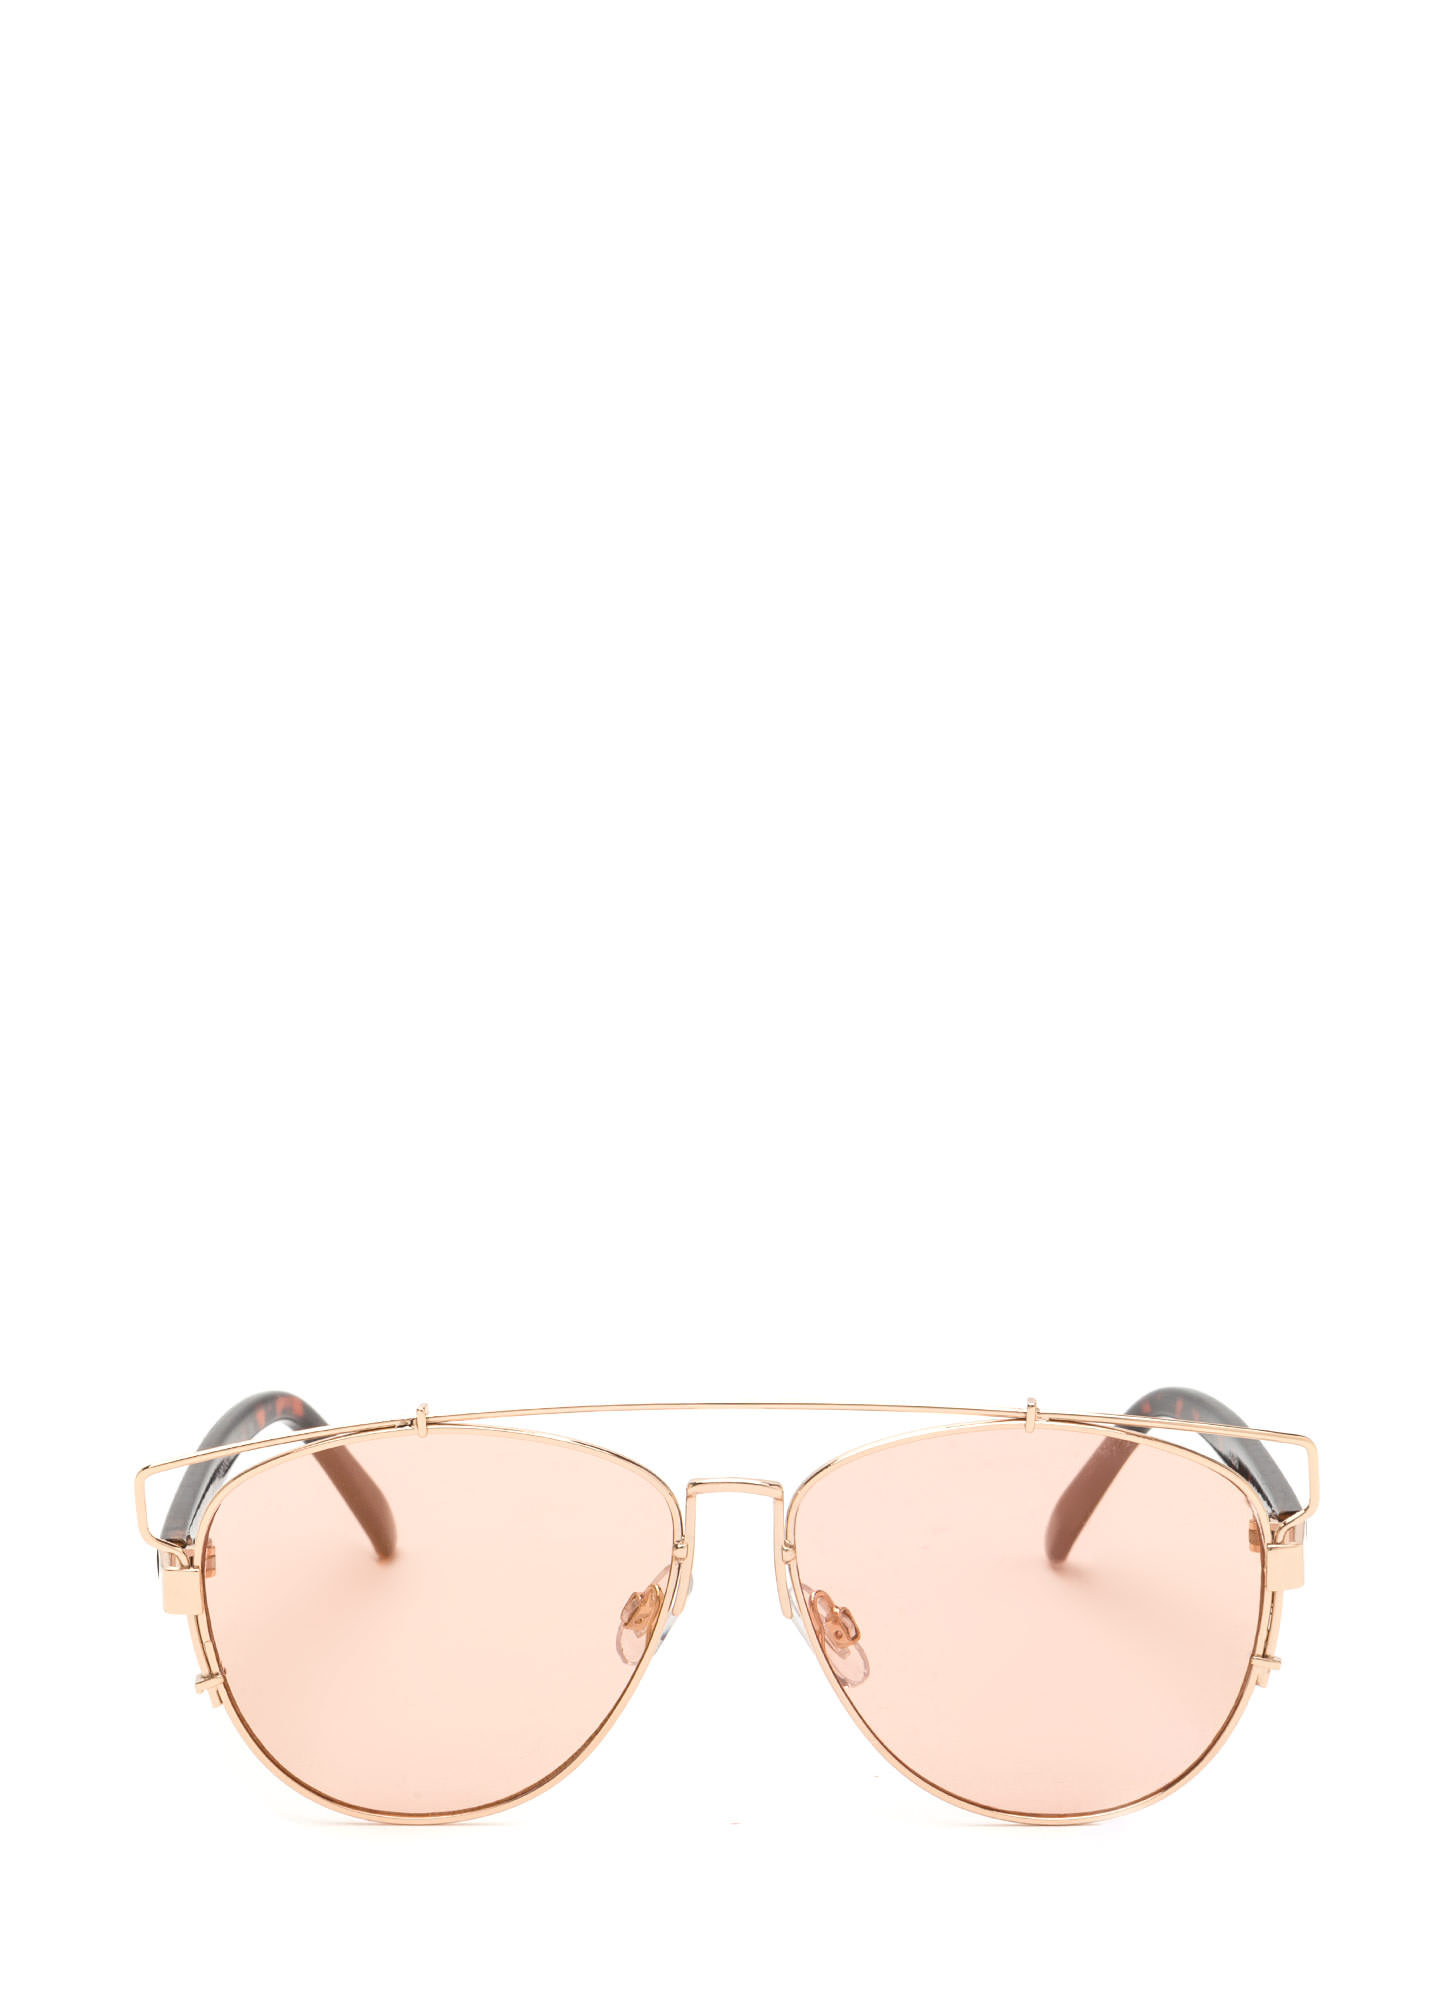 Finders Keepers Aviator Sunglasses PINKGOLD